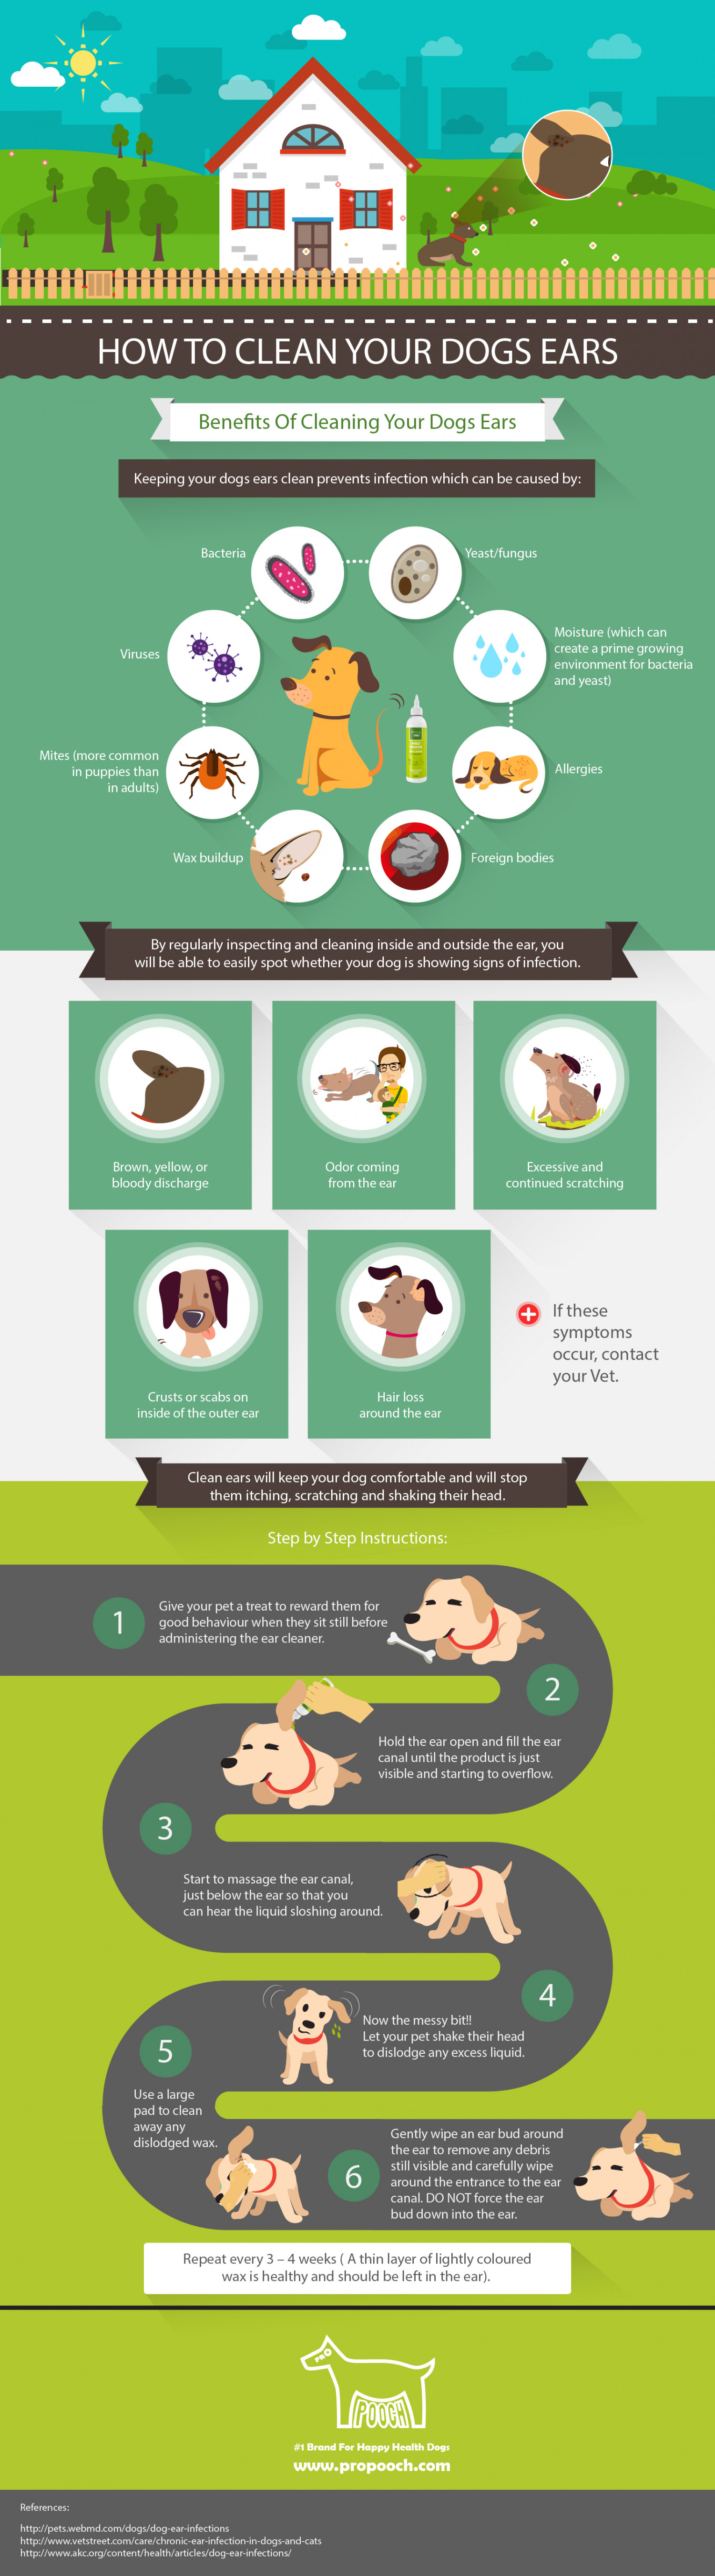 Pro Pooch How To Clean Your Dogs Ears Infographic